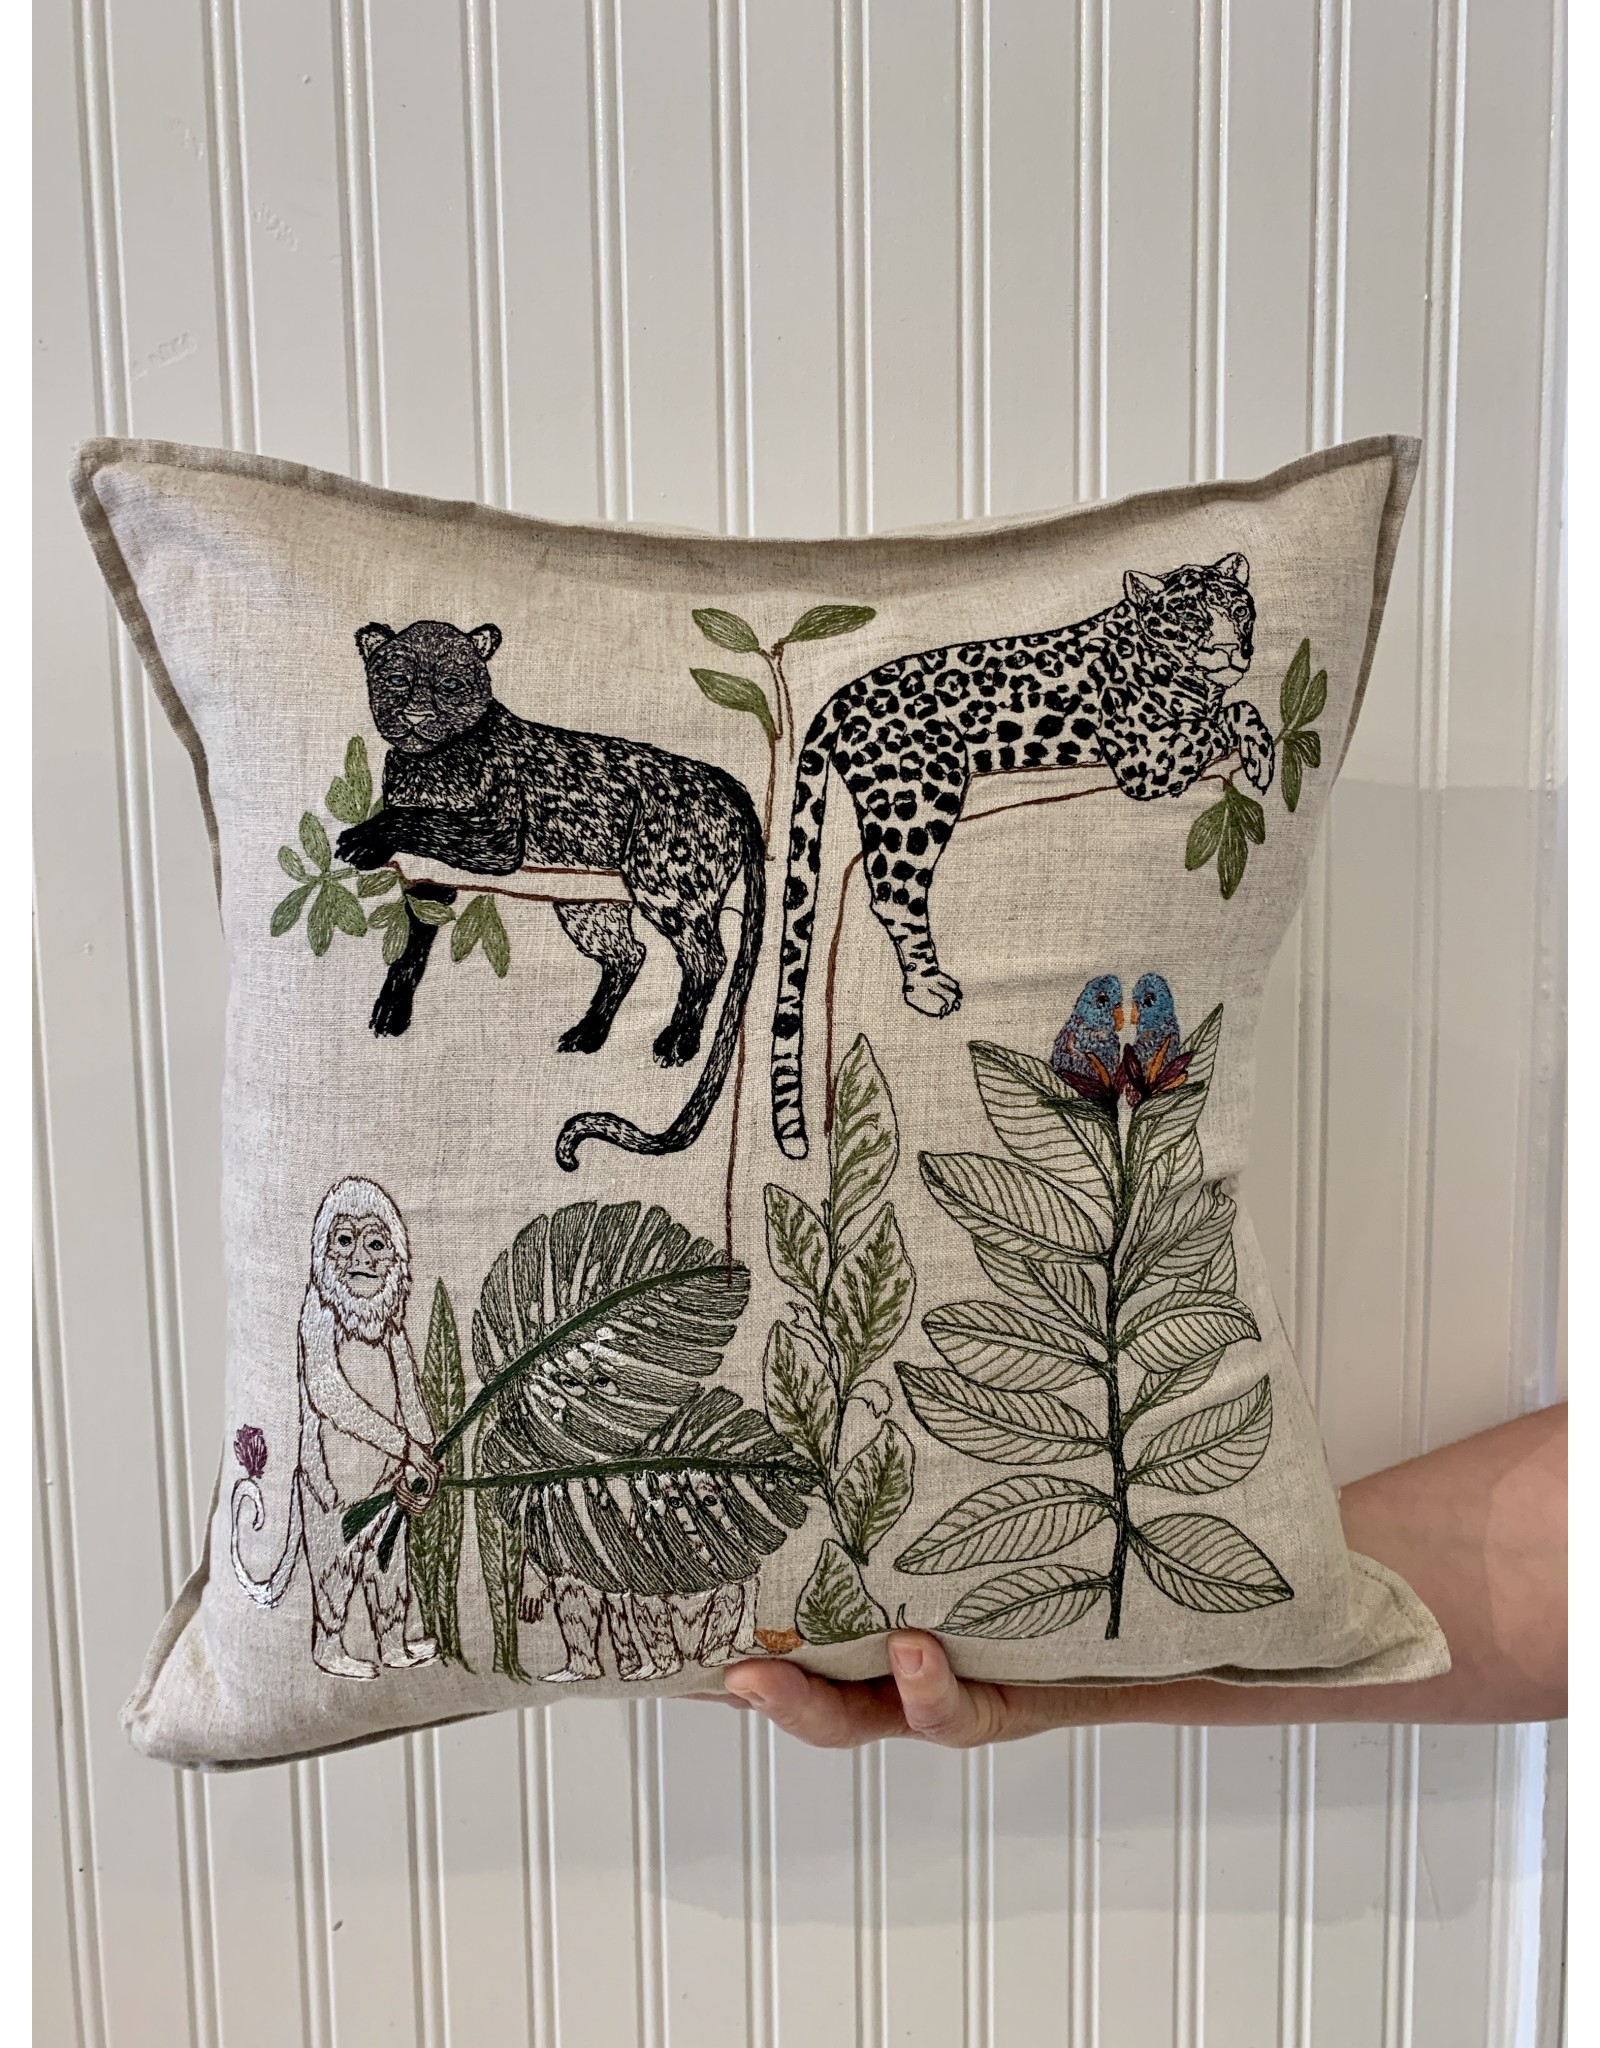 Coral & Tusk Jungle Living Tree 16x16 by Coral & Tusk